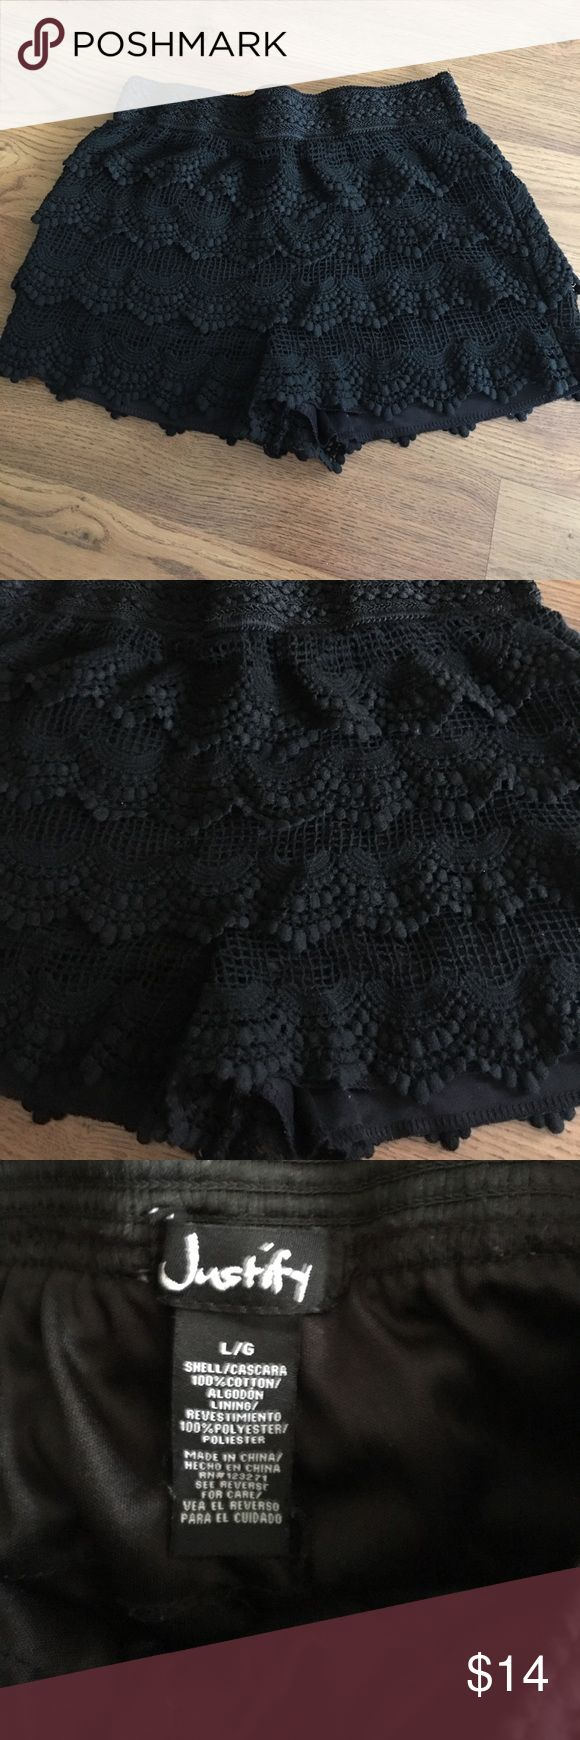 Lace scalloped shorts lg Cute black lace scalloped shorts. Size large. Worn once. justify Shorts